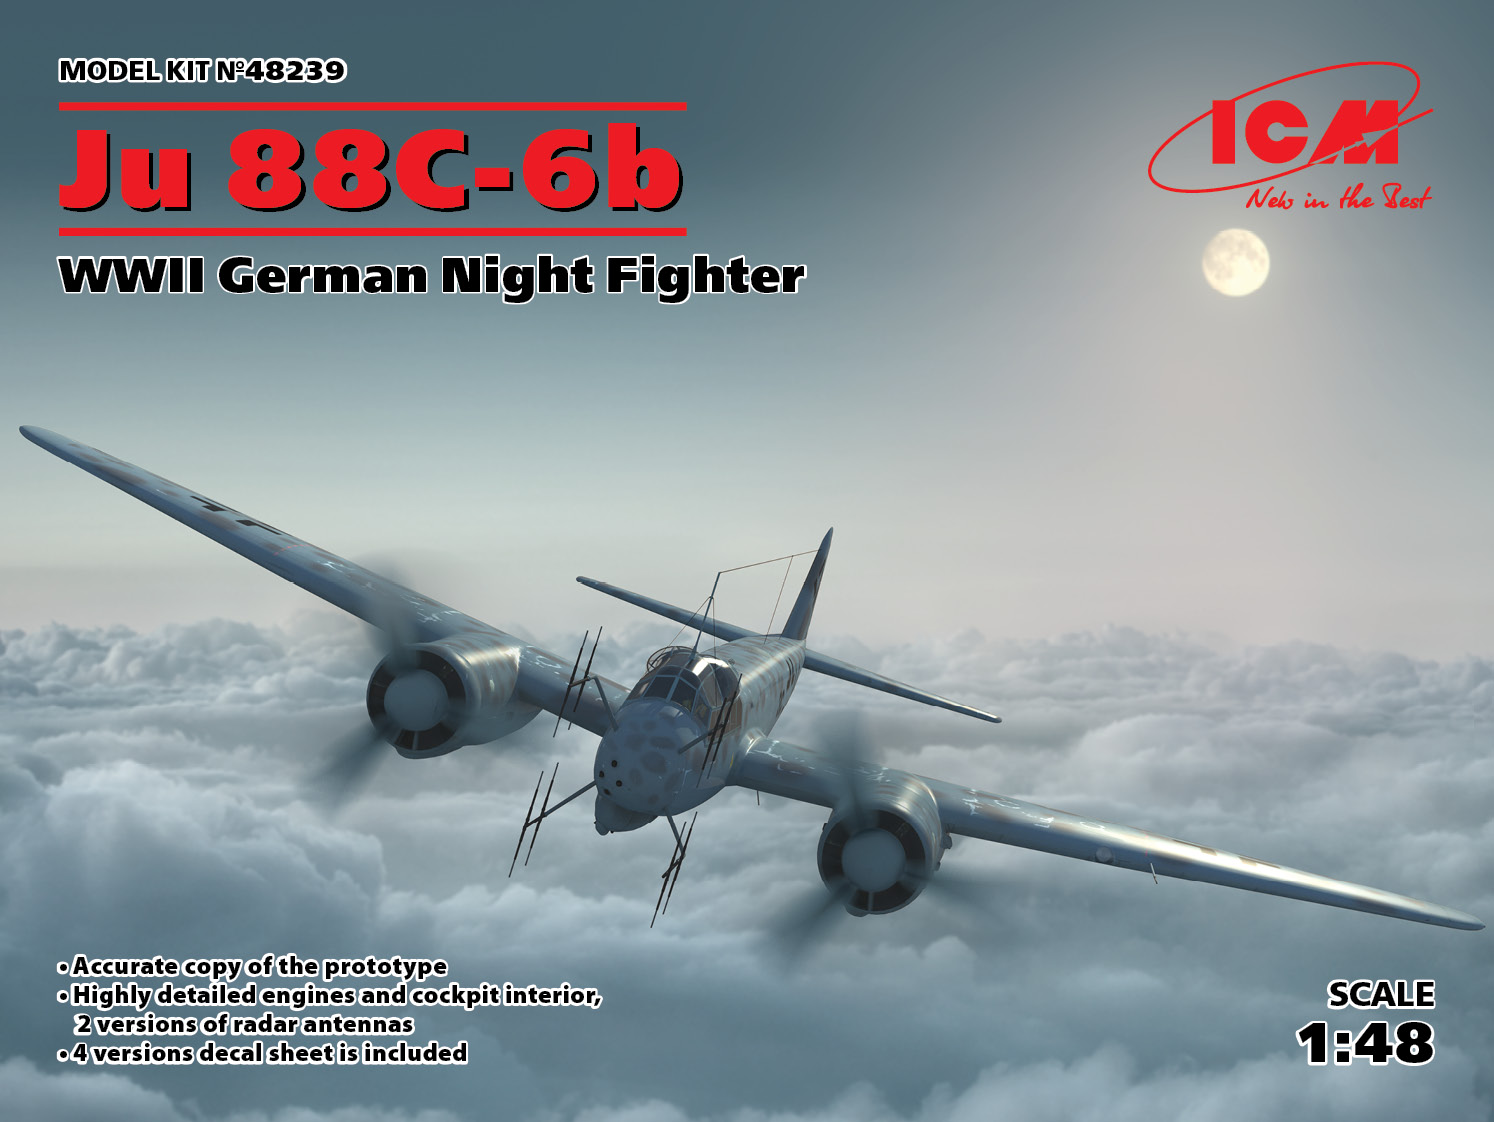 1/48 Junkers Ju-88 -6b WWII German Night Fighter